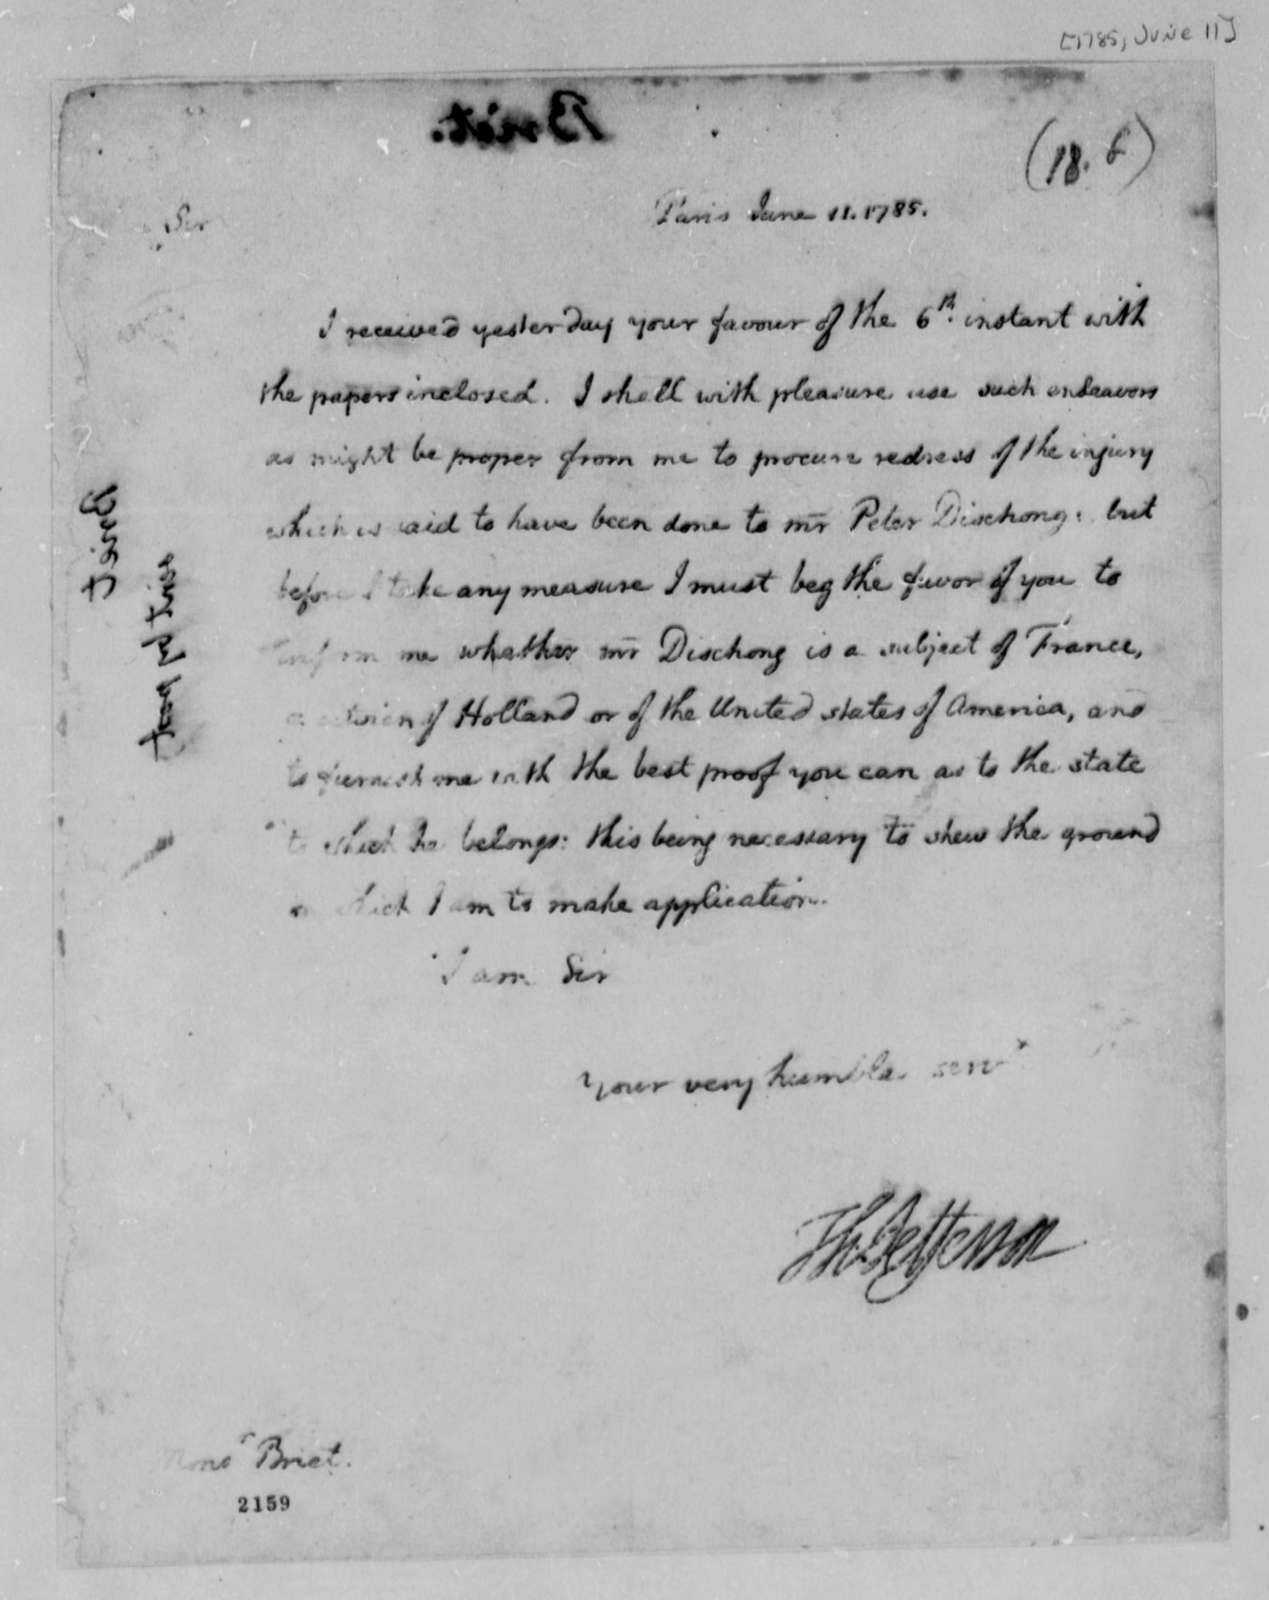 Thomas Jefferson to Jean Francois Briet, June 11, 1785